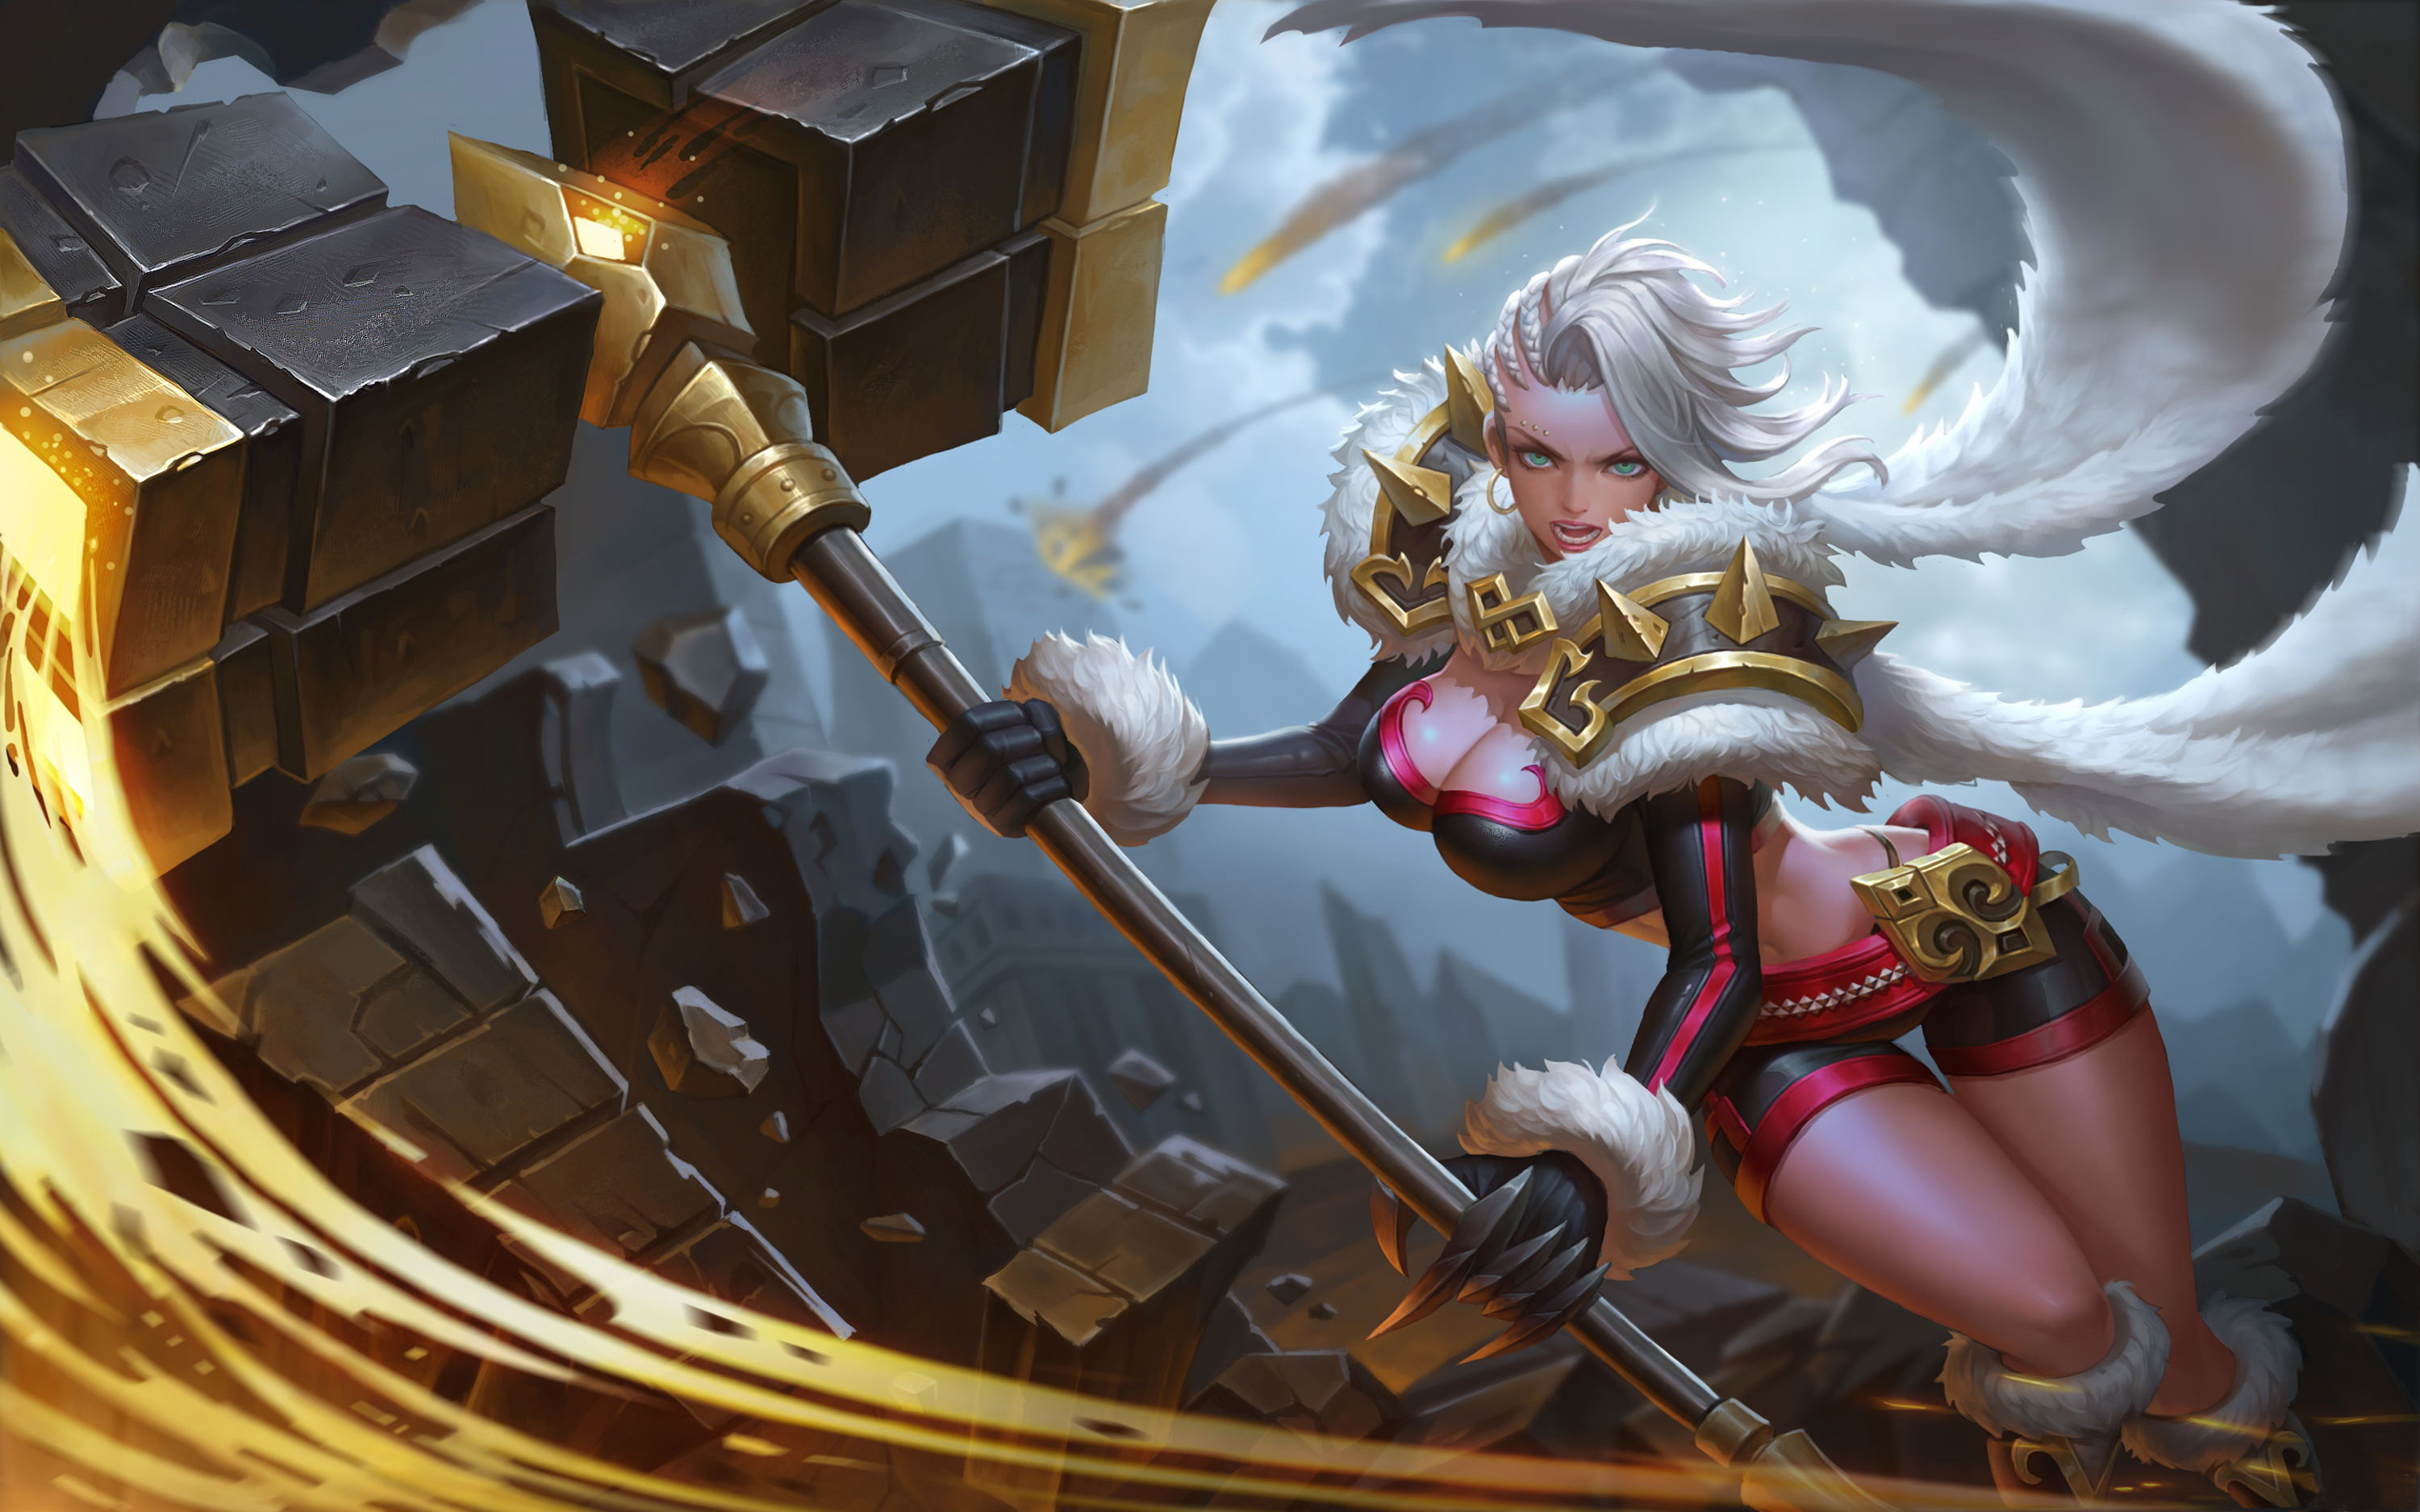 Hd Girl Wallpaper For Android Popular Mobile Games King Of Glory Master Wu Yen Character